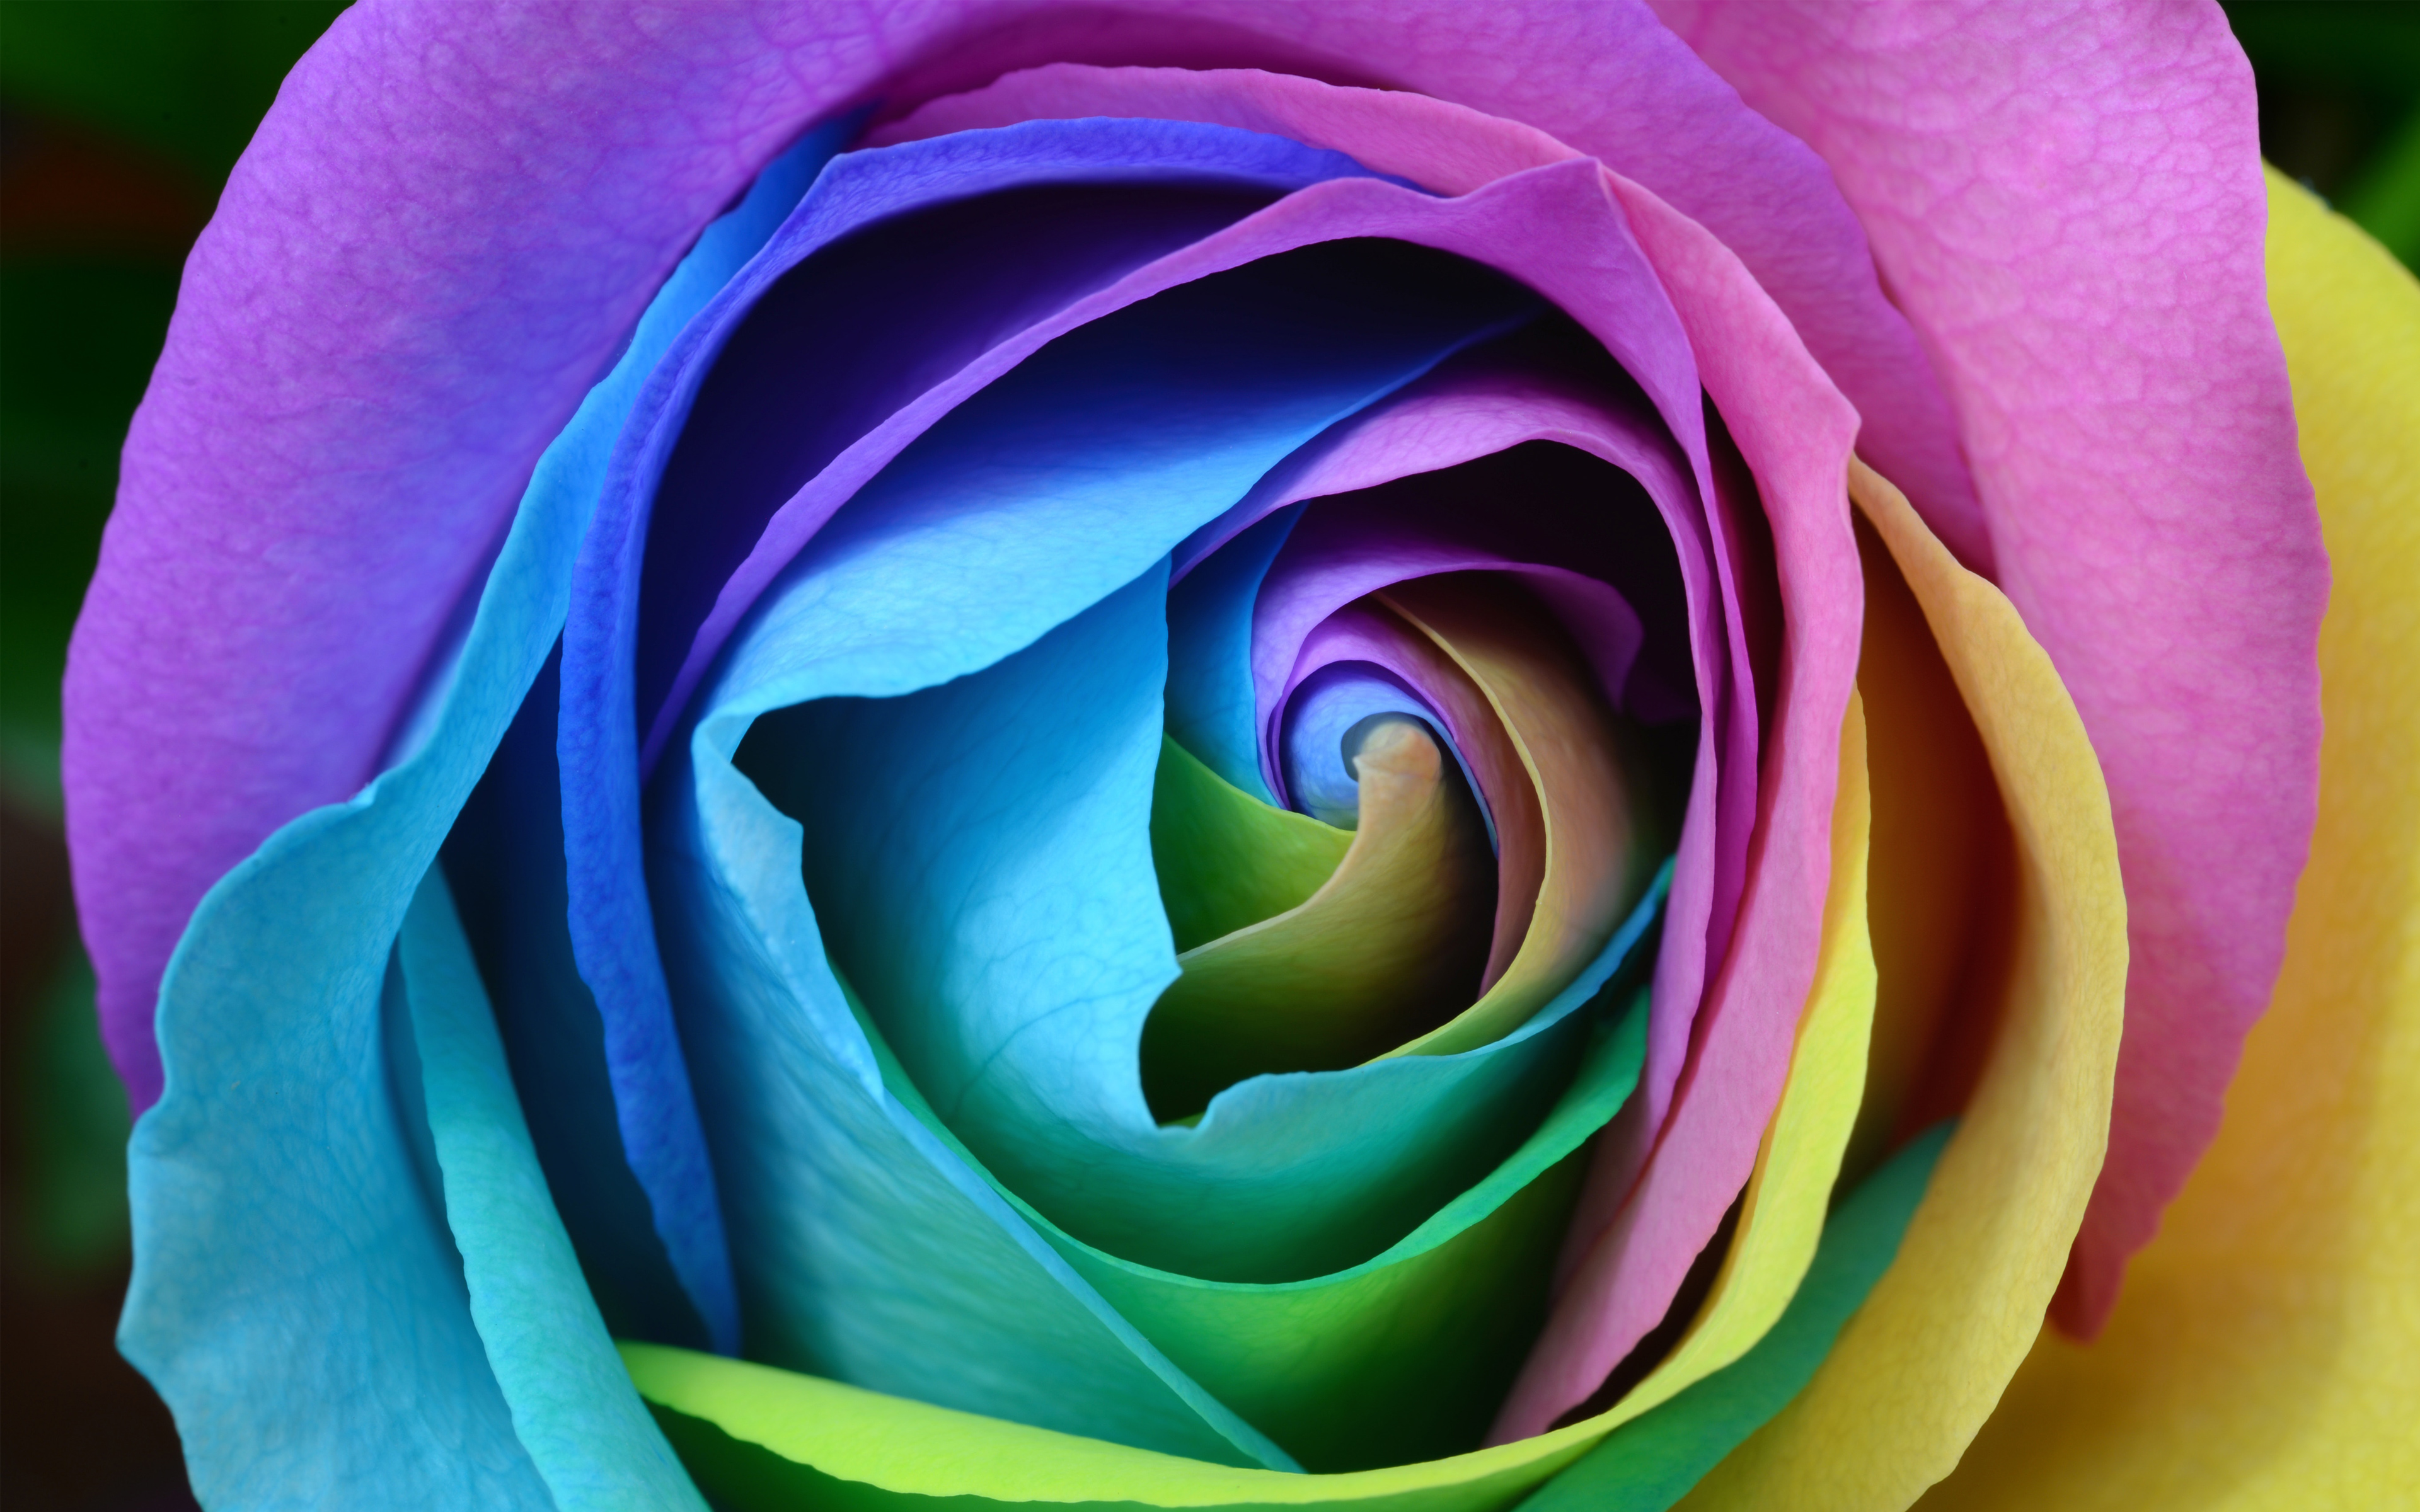 Colorful Rose 4K